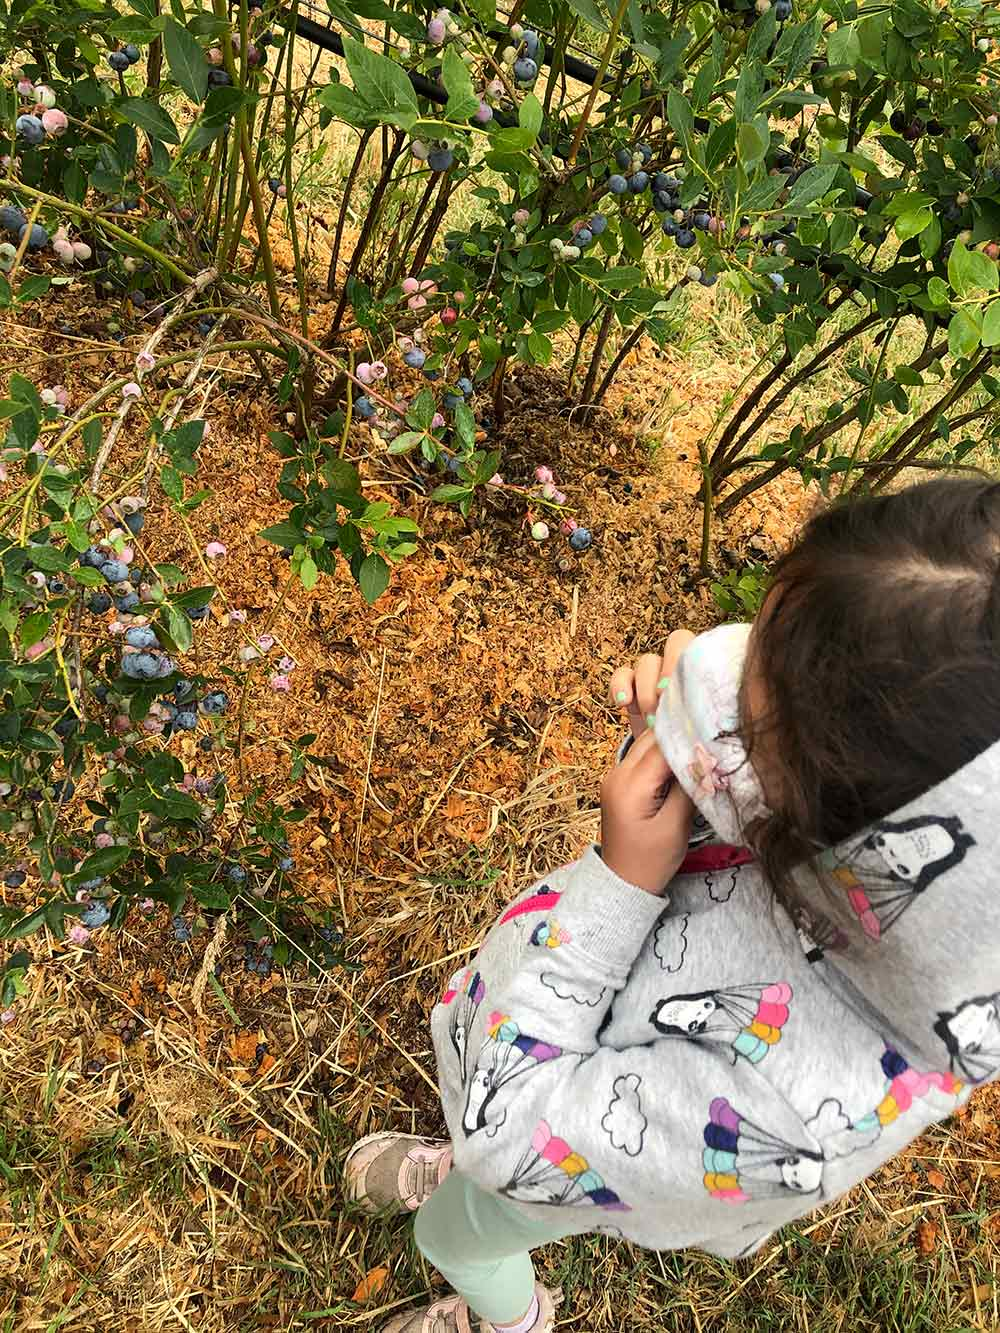 duckworth farms coycoy eating blueberries